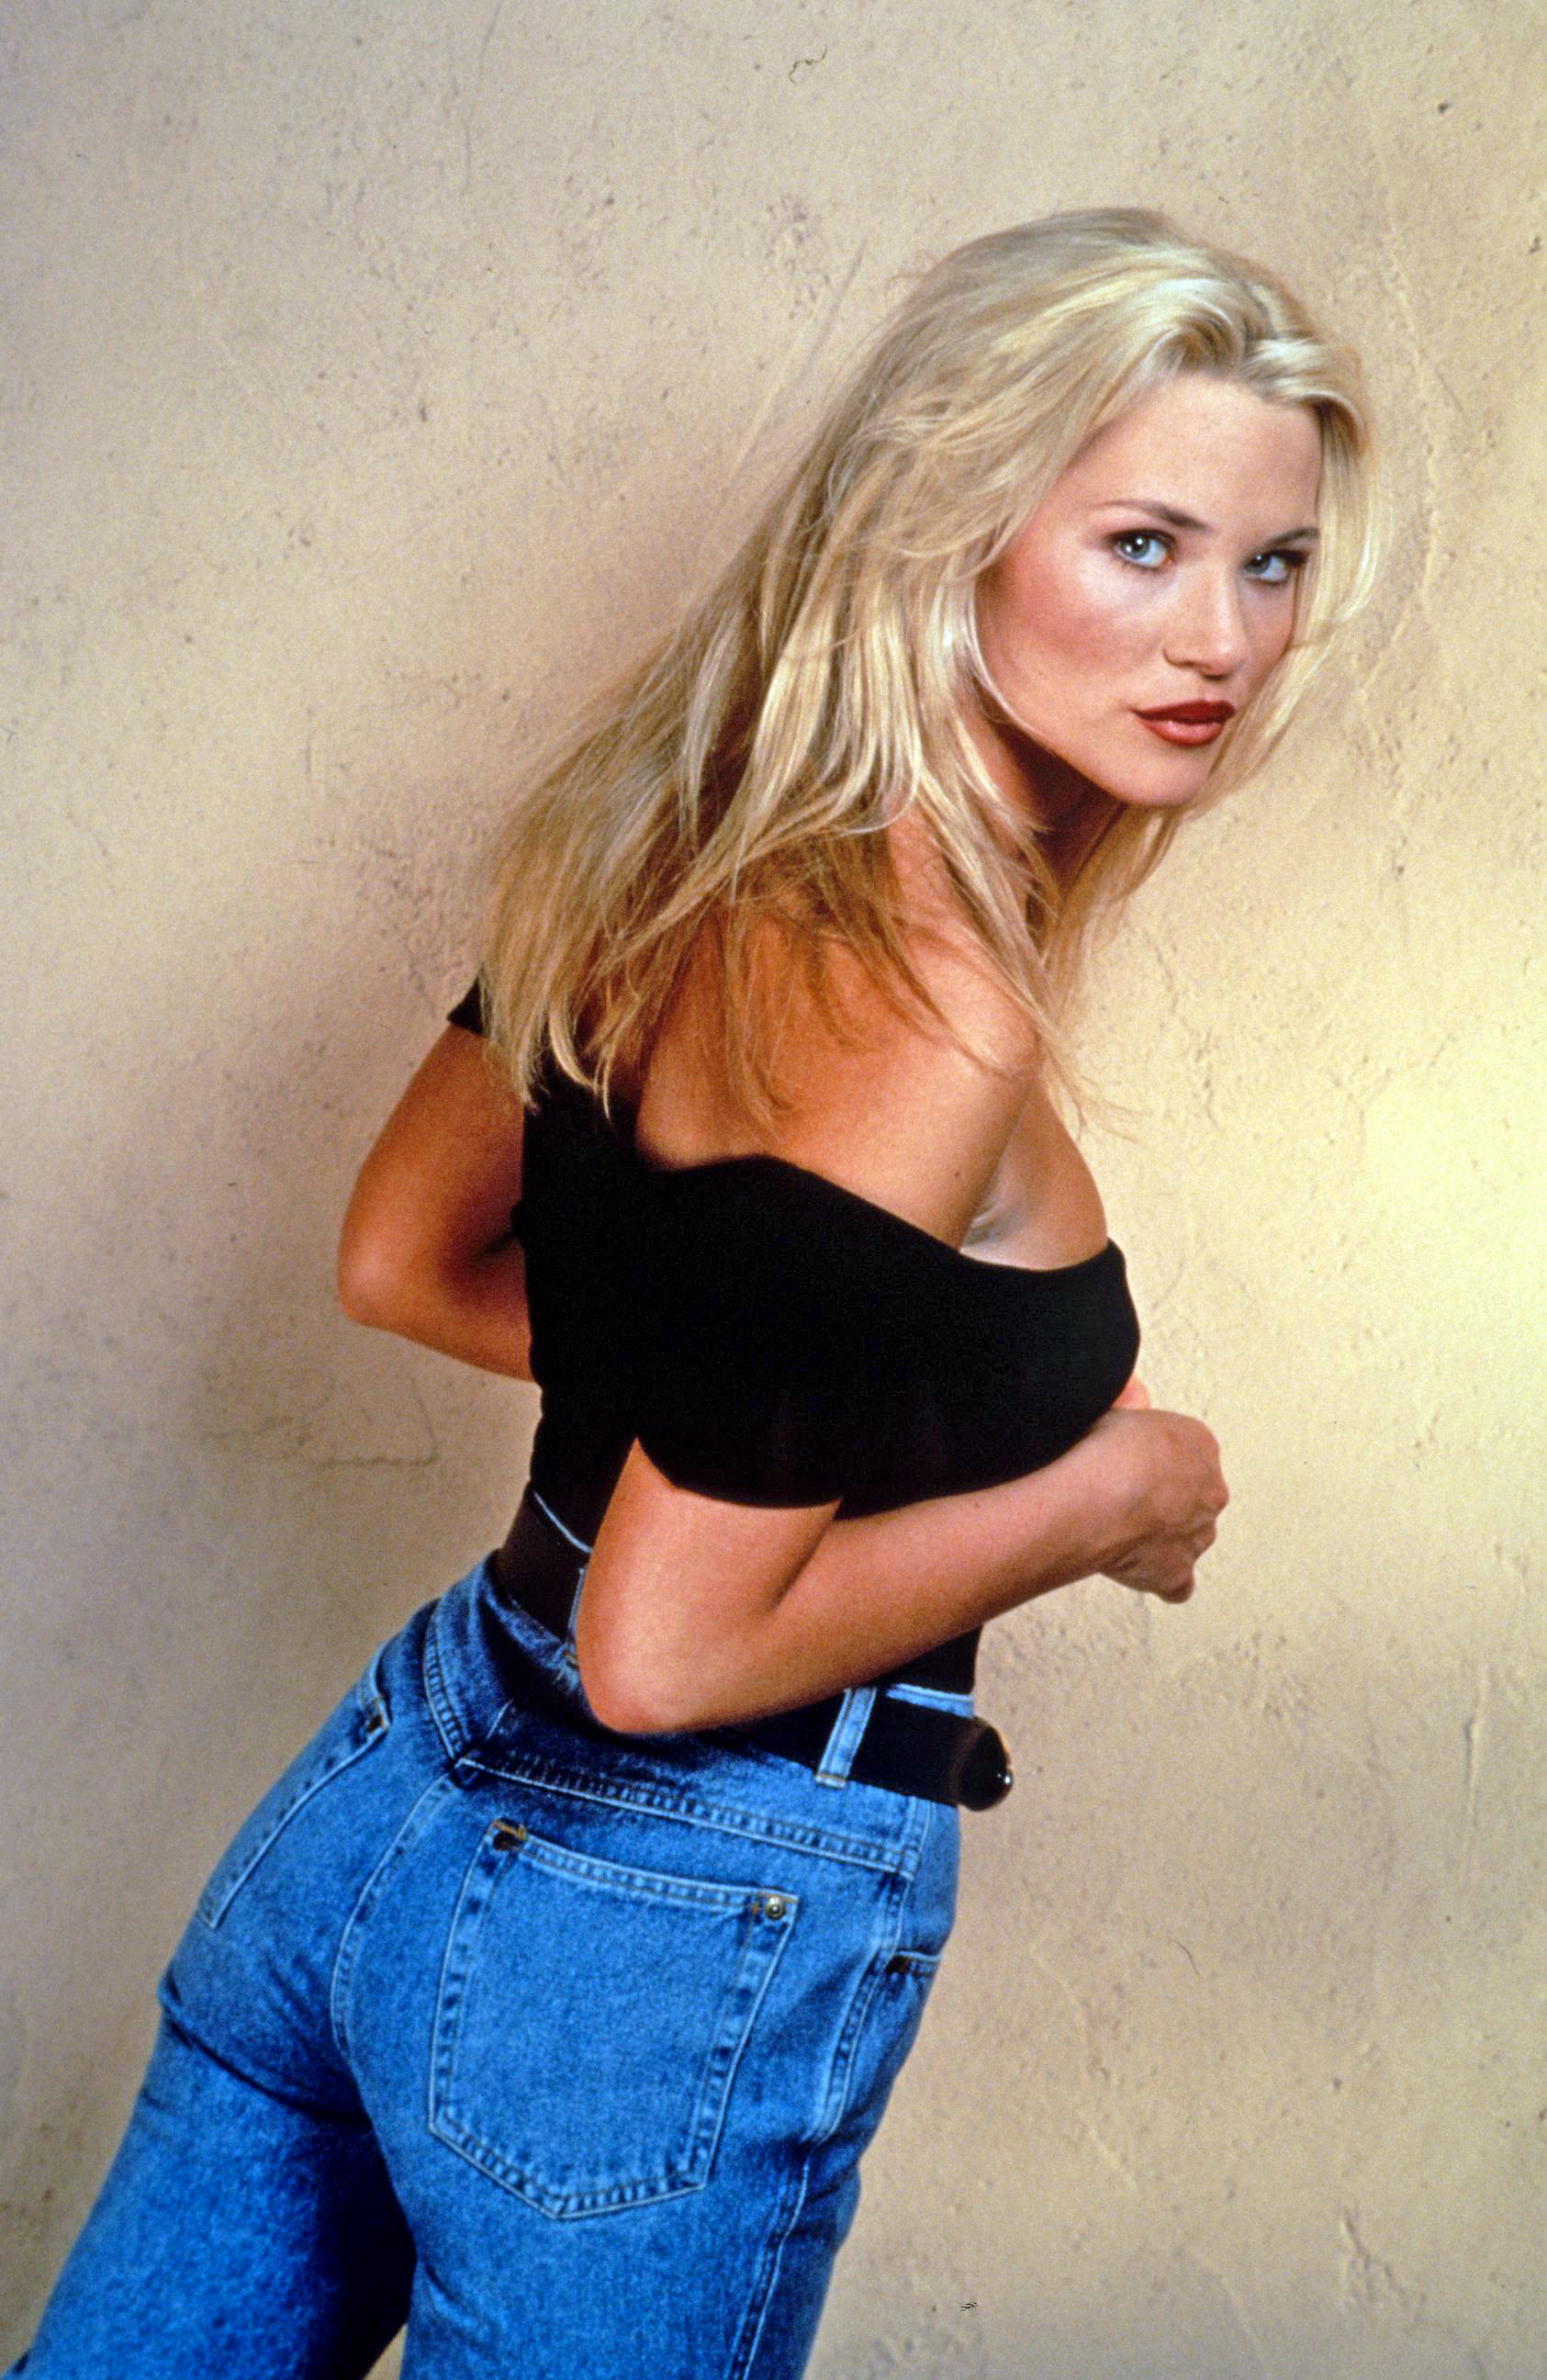 Amy Locane Melrose Place Pictures melrose-place-amy-locane-dvdbash-wordpress-3 | dvdbash